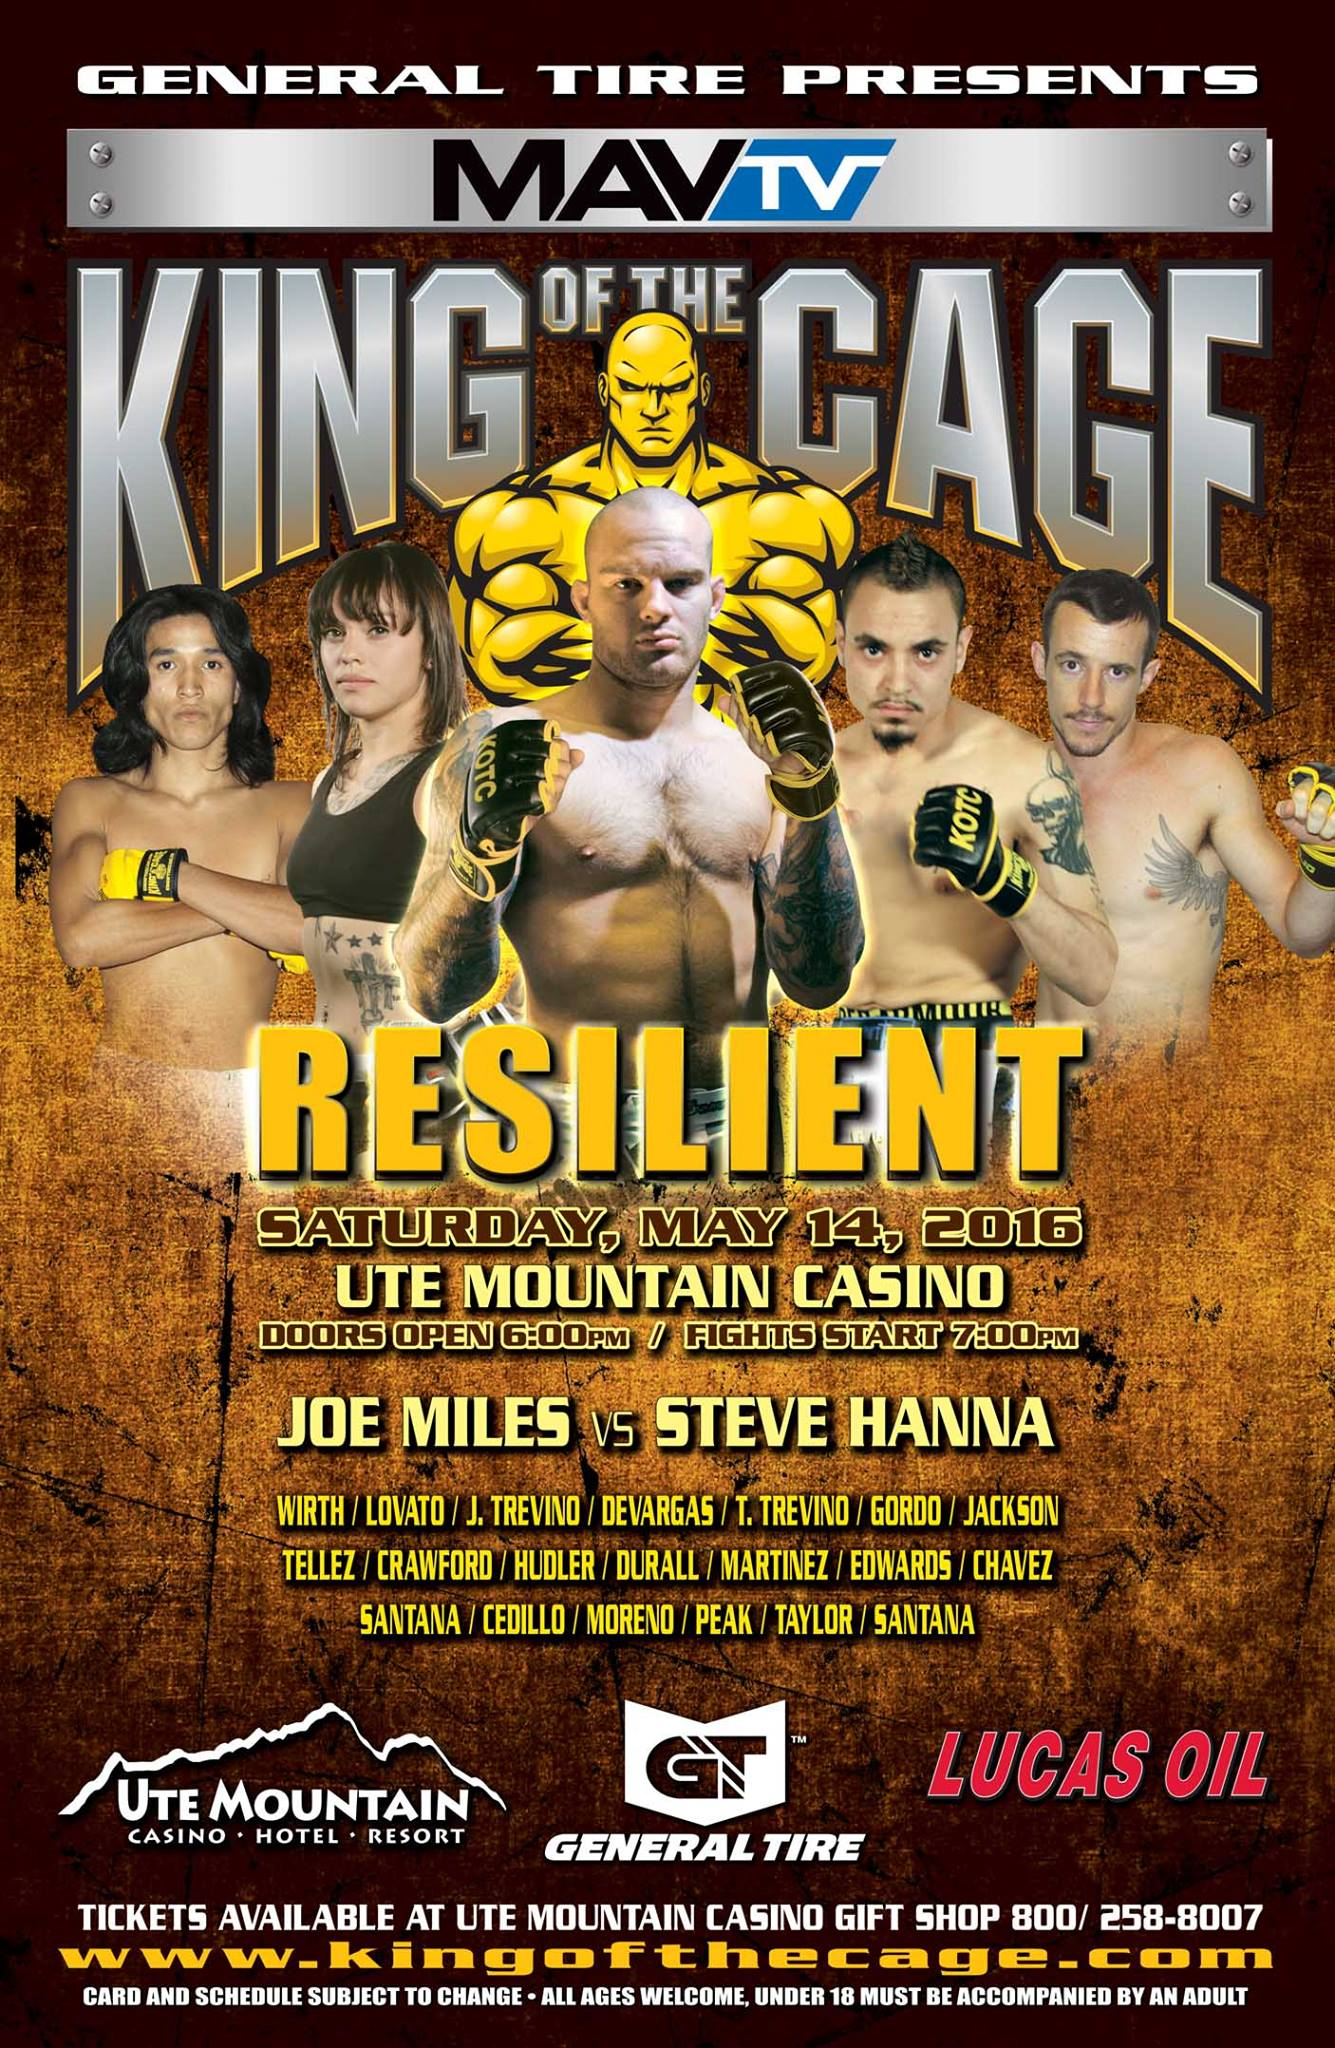 king of the cage returns to the ute mountain casino hotel resort on may 14 for resilient